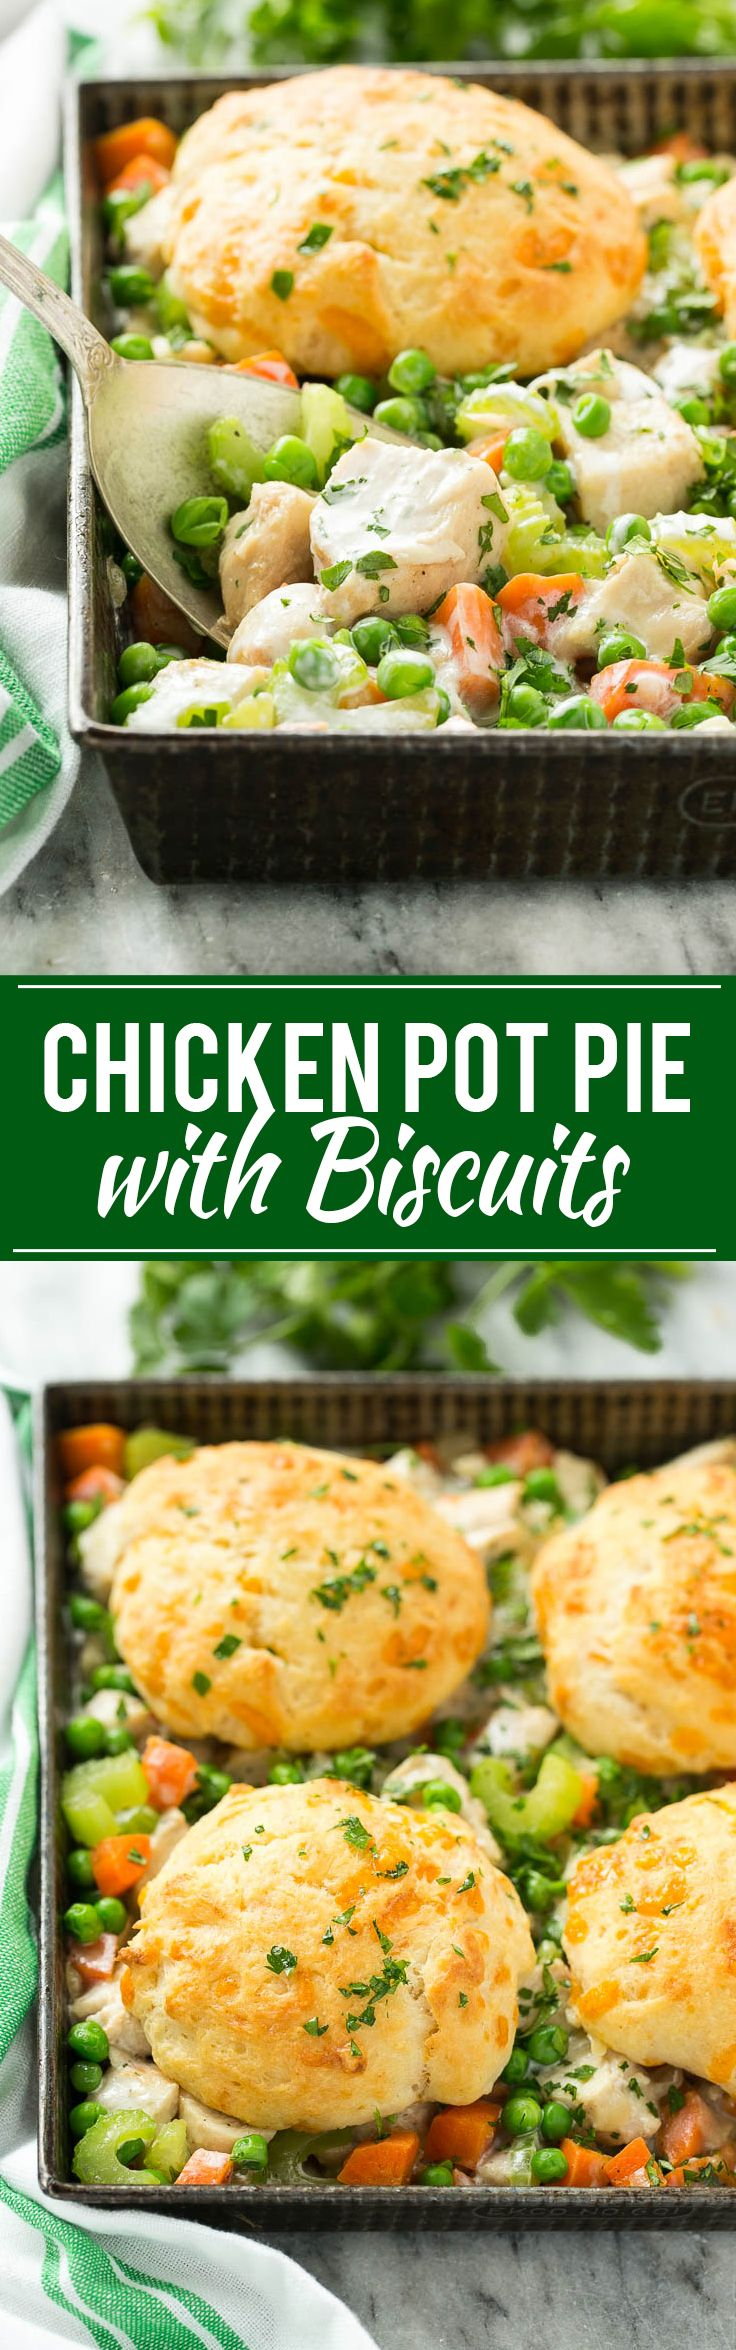 This recipe for biscuit chicken pot pie is a creamy mixture of seasoned chicken, vegetables and herbs that's been topped with flaky cheddar biscuits and baked to perfection.